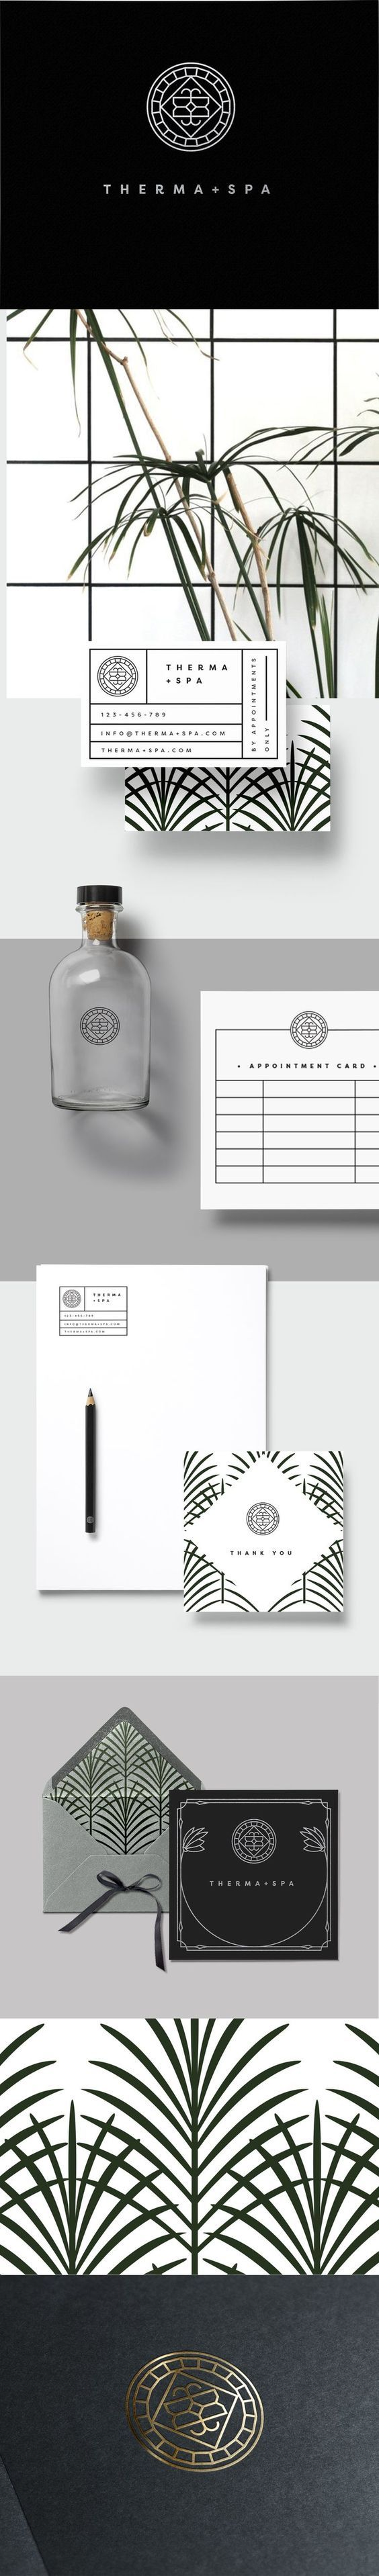 Therma + Spa Branding by Loolaadesigns   Fivestar Branding Agency – Design and Branding Agency & Curated Inspiration Gallery